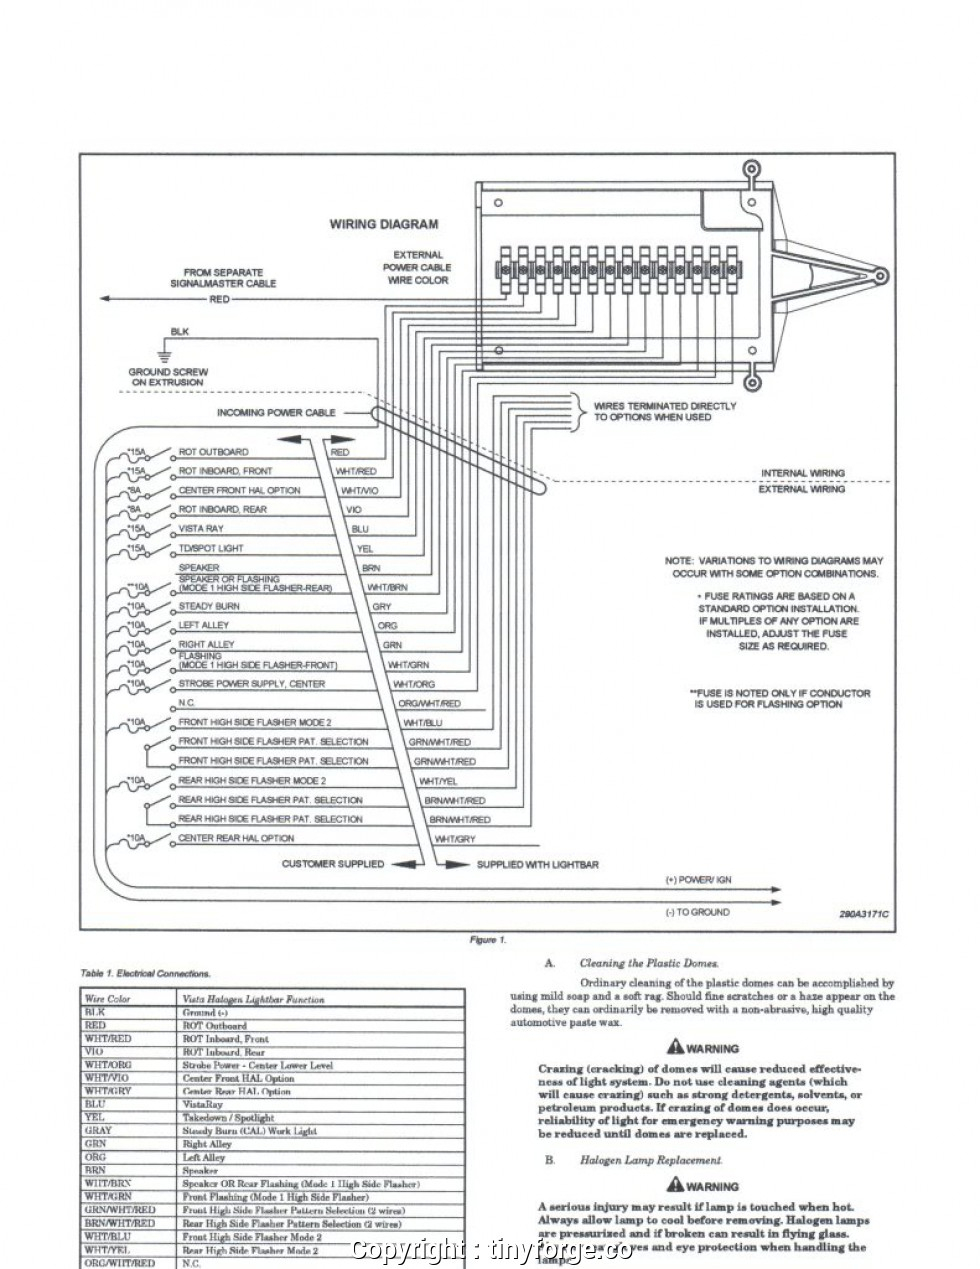 Whelen Power Supply Wiring Diagram | Wiring Library - Whelen Light Bar Wiring Diagram